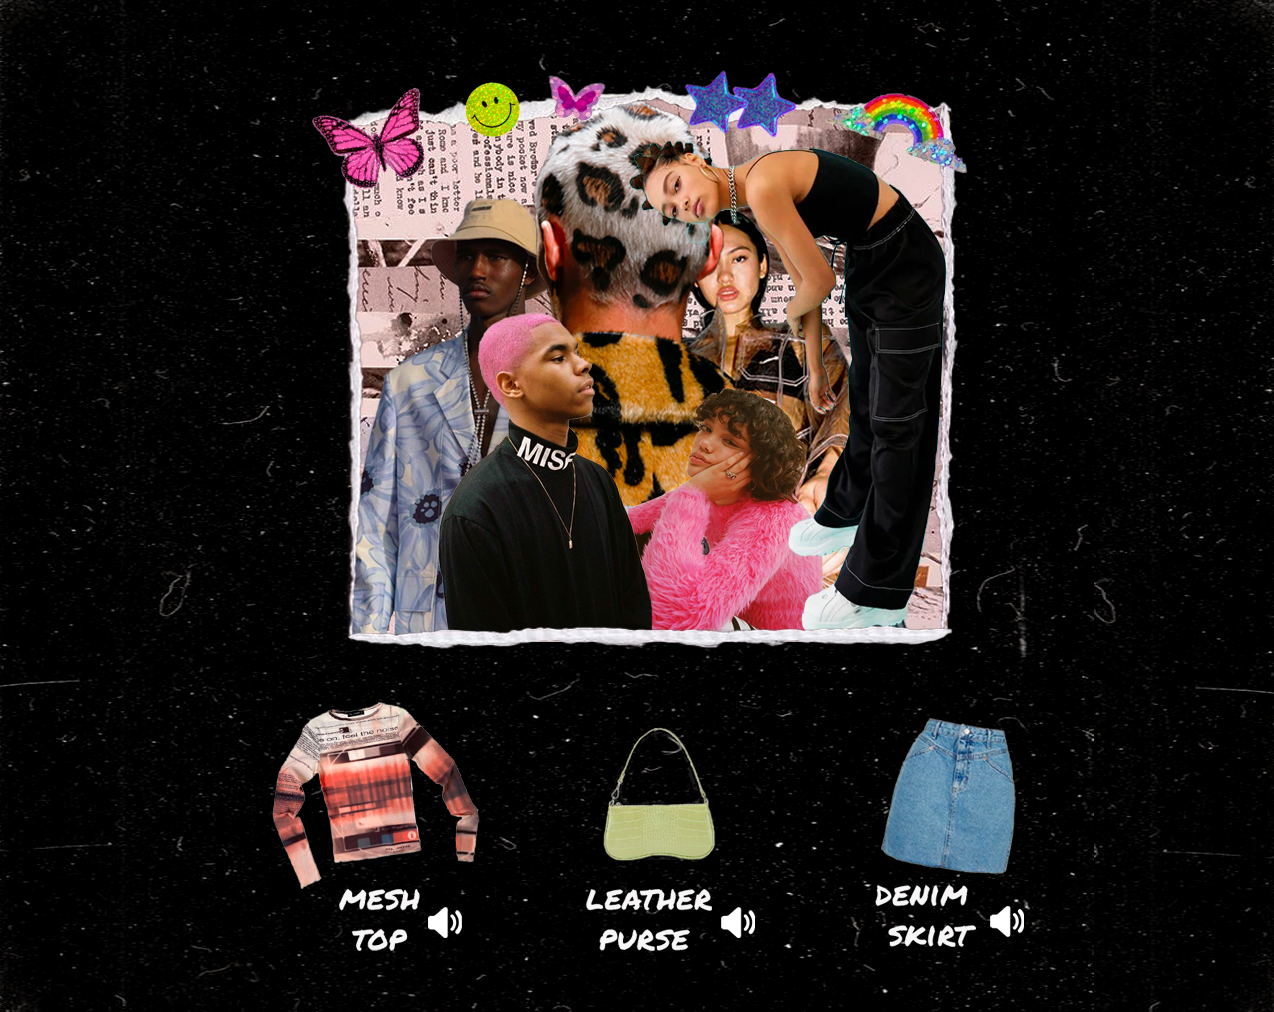 A zine-inspired collage, featuring photographs of current trends. Three articles- a mesh top, leather purse and denim skirt- are accompanied by text.